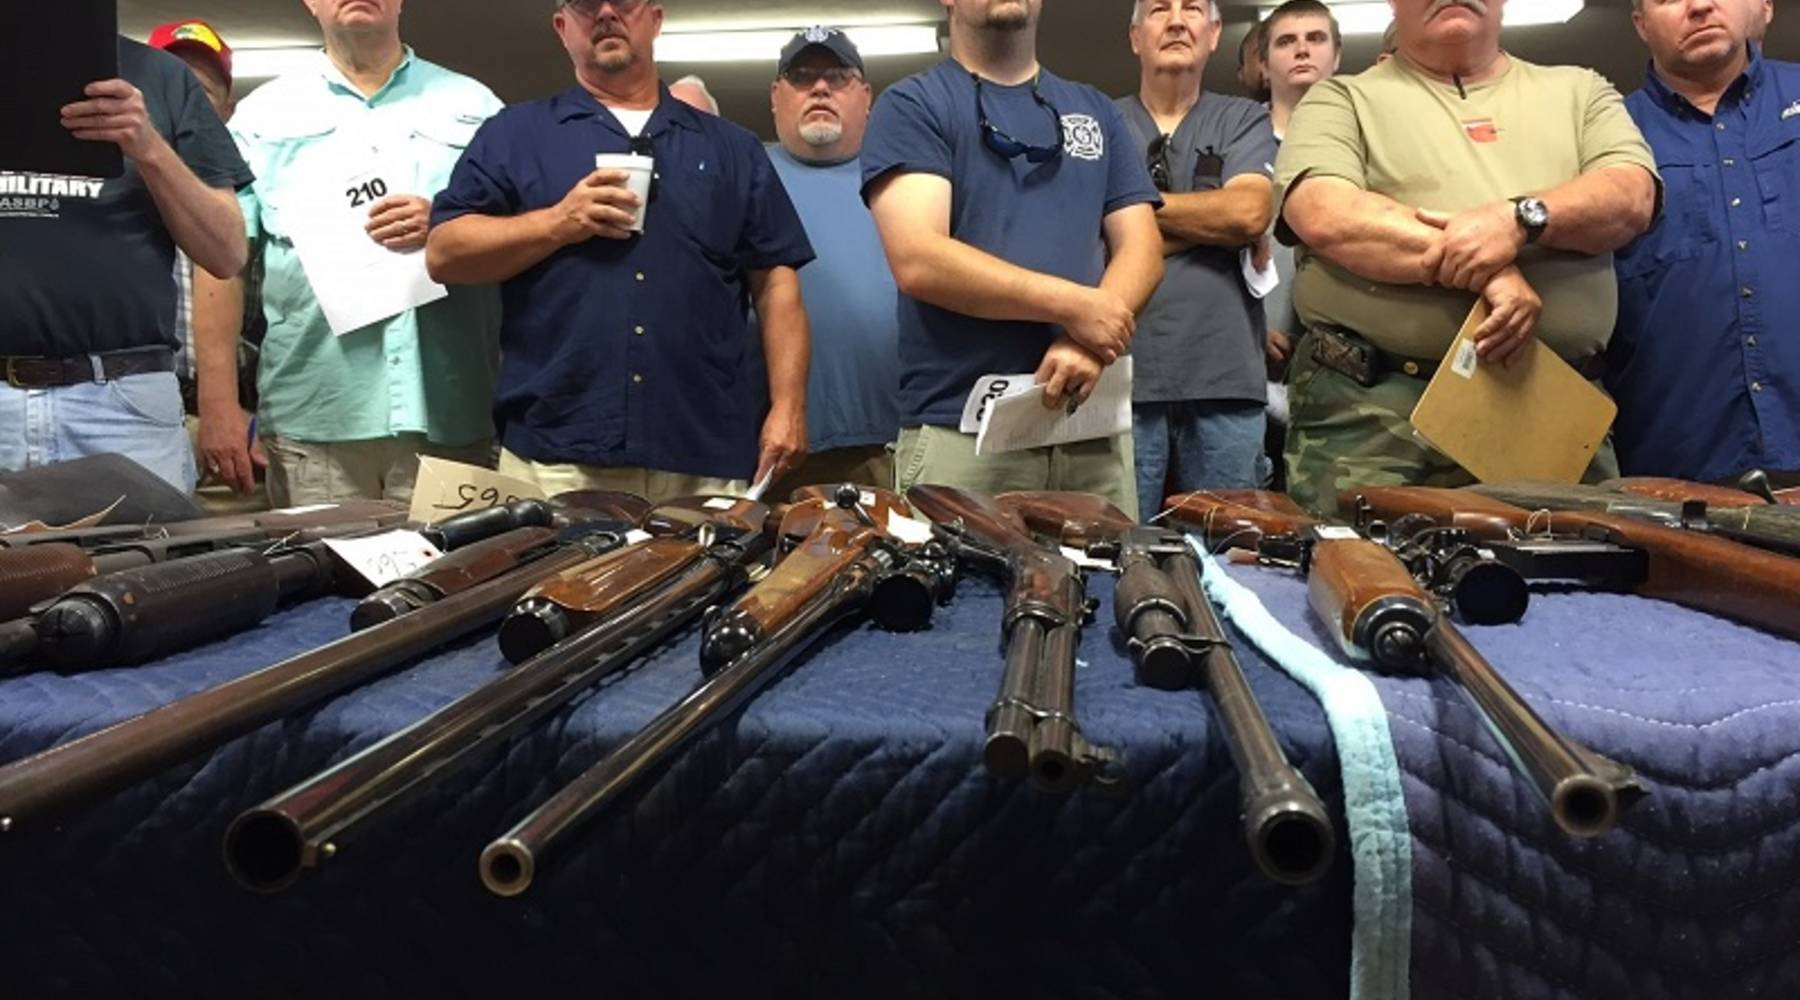 Law enforcement auctions guns that were confiscated in